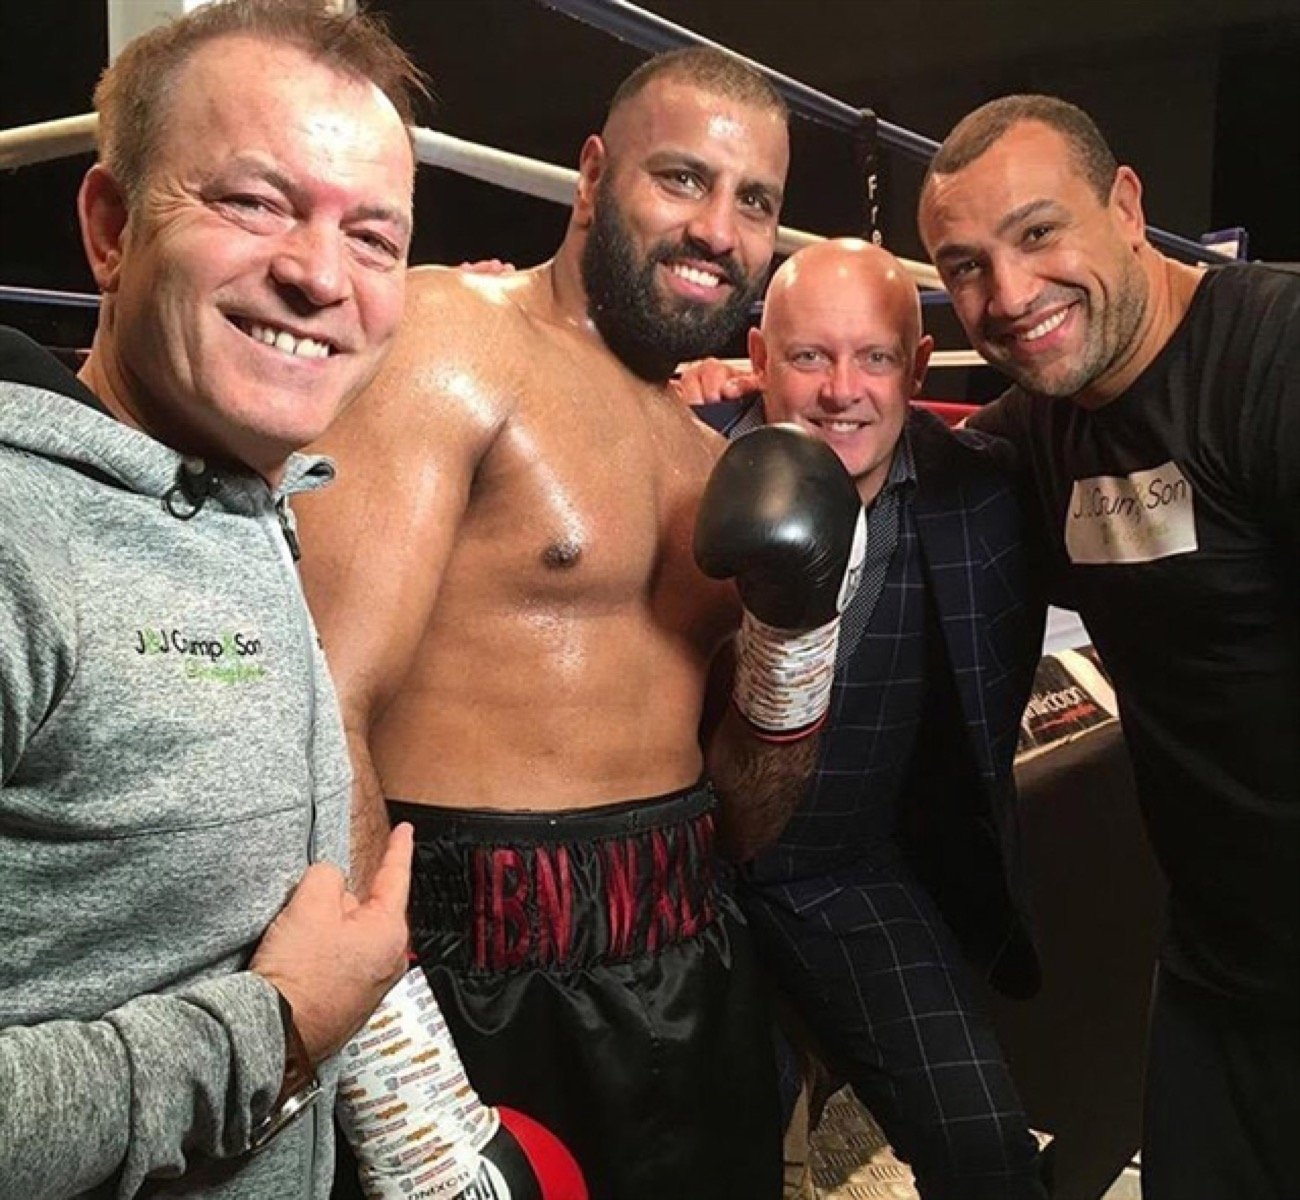 Kash Ali says he will be far too good for Josh Sandland when they meet in an all-Yorkshire heavyweight clash on February 21 at the Barnsley Metrodome, as chief support to local fighter Josh Wale's bout against Tanzania's Iddi Kayumba.